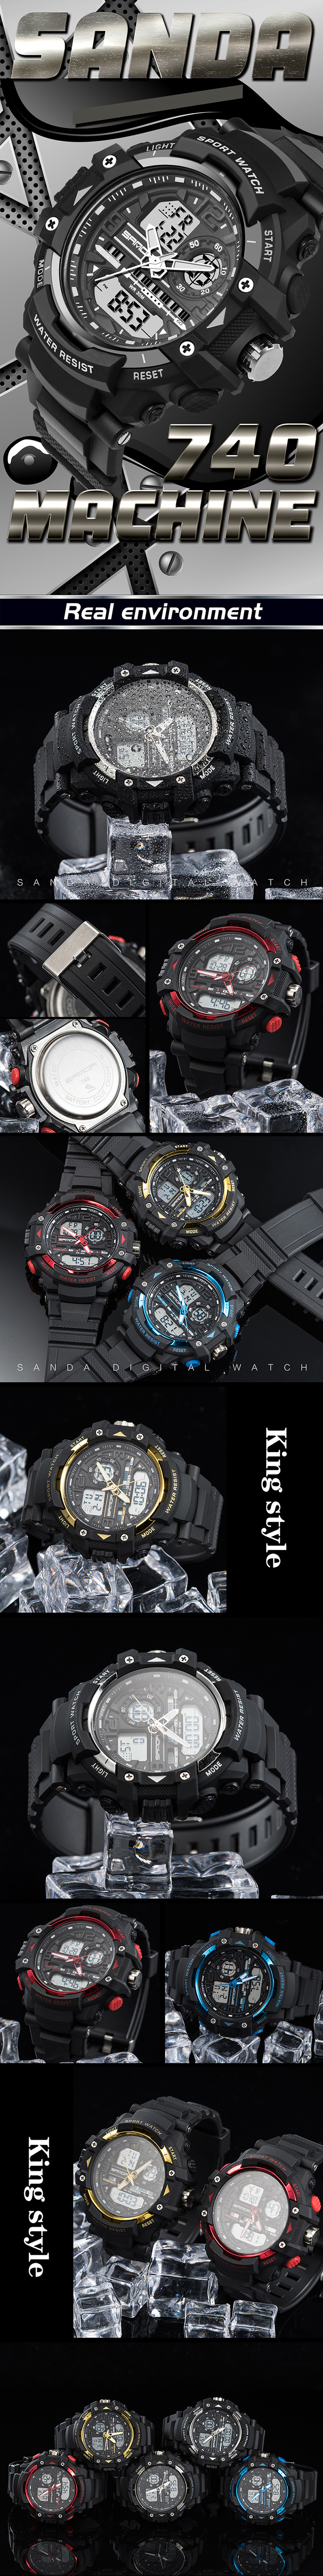 SANDA 740 Fashion Men Dual Display Watch Multifunction Swimming Diving Sport Watch